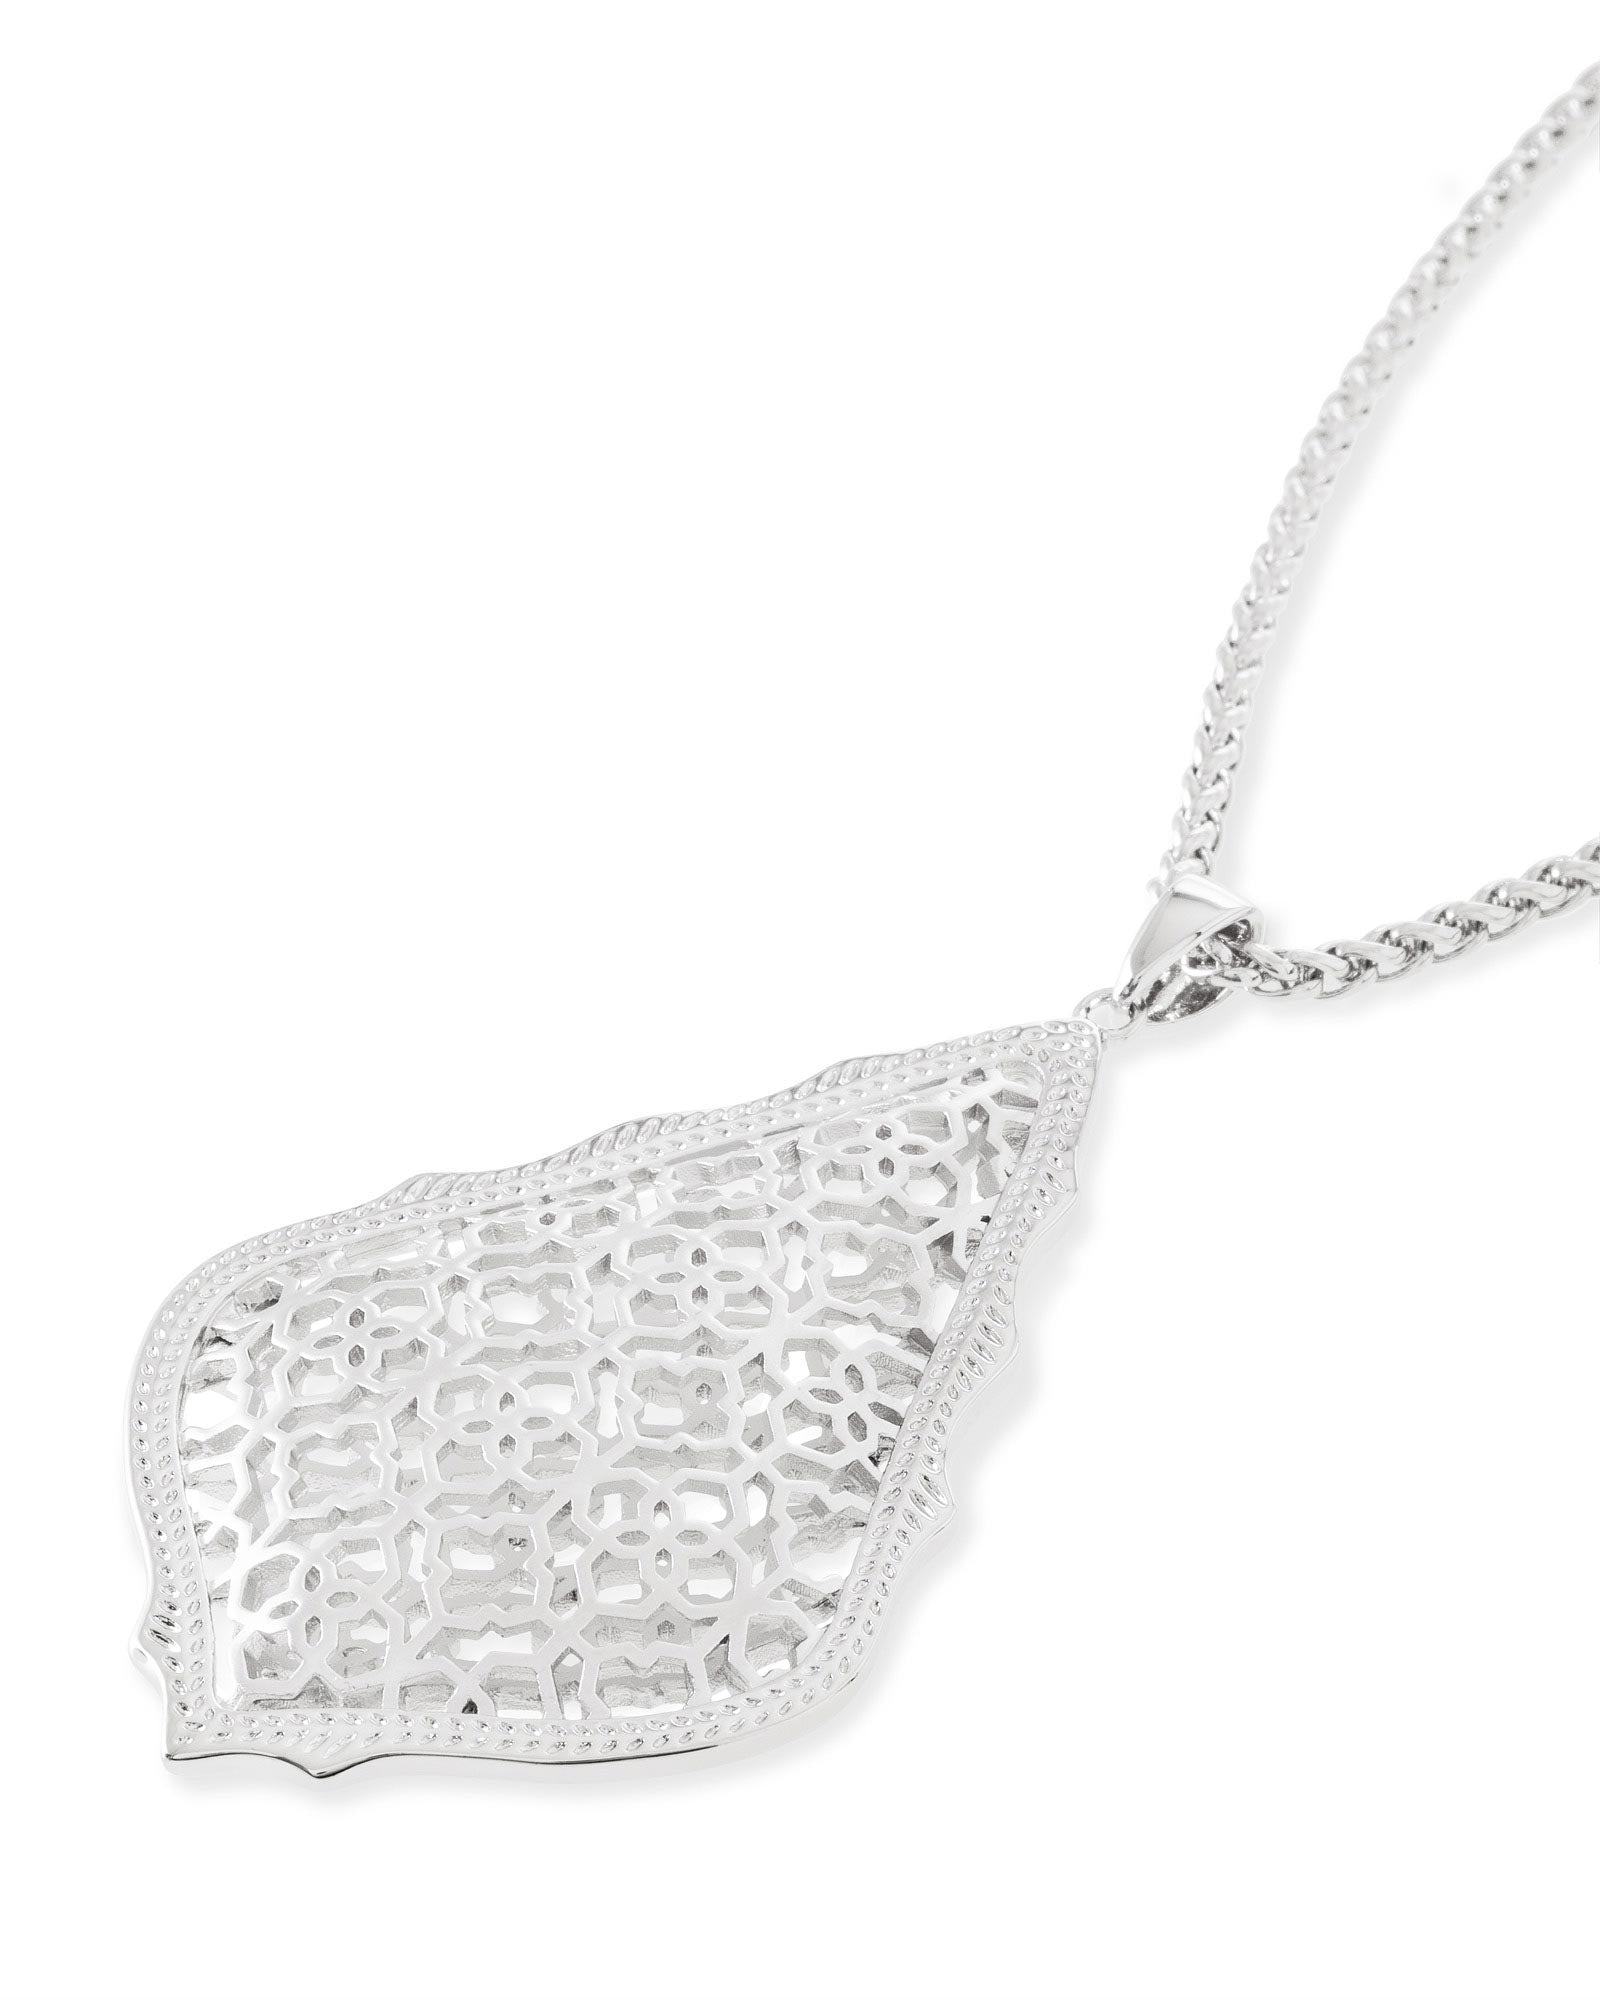 Aiden Silver Filigree Necklace